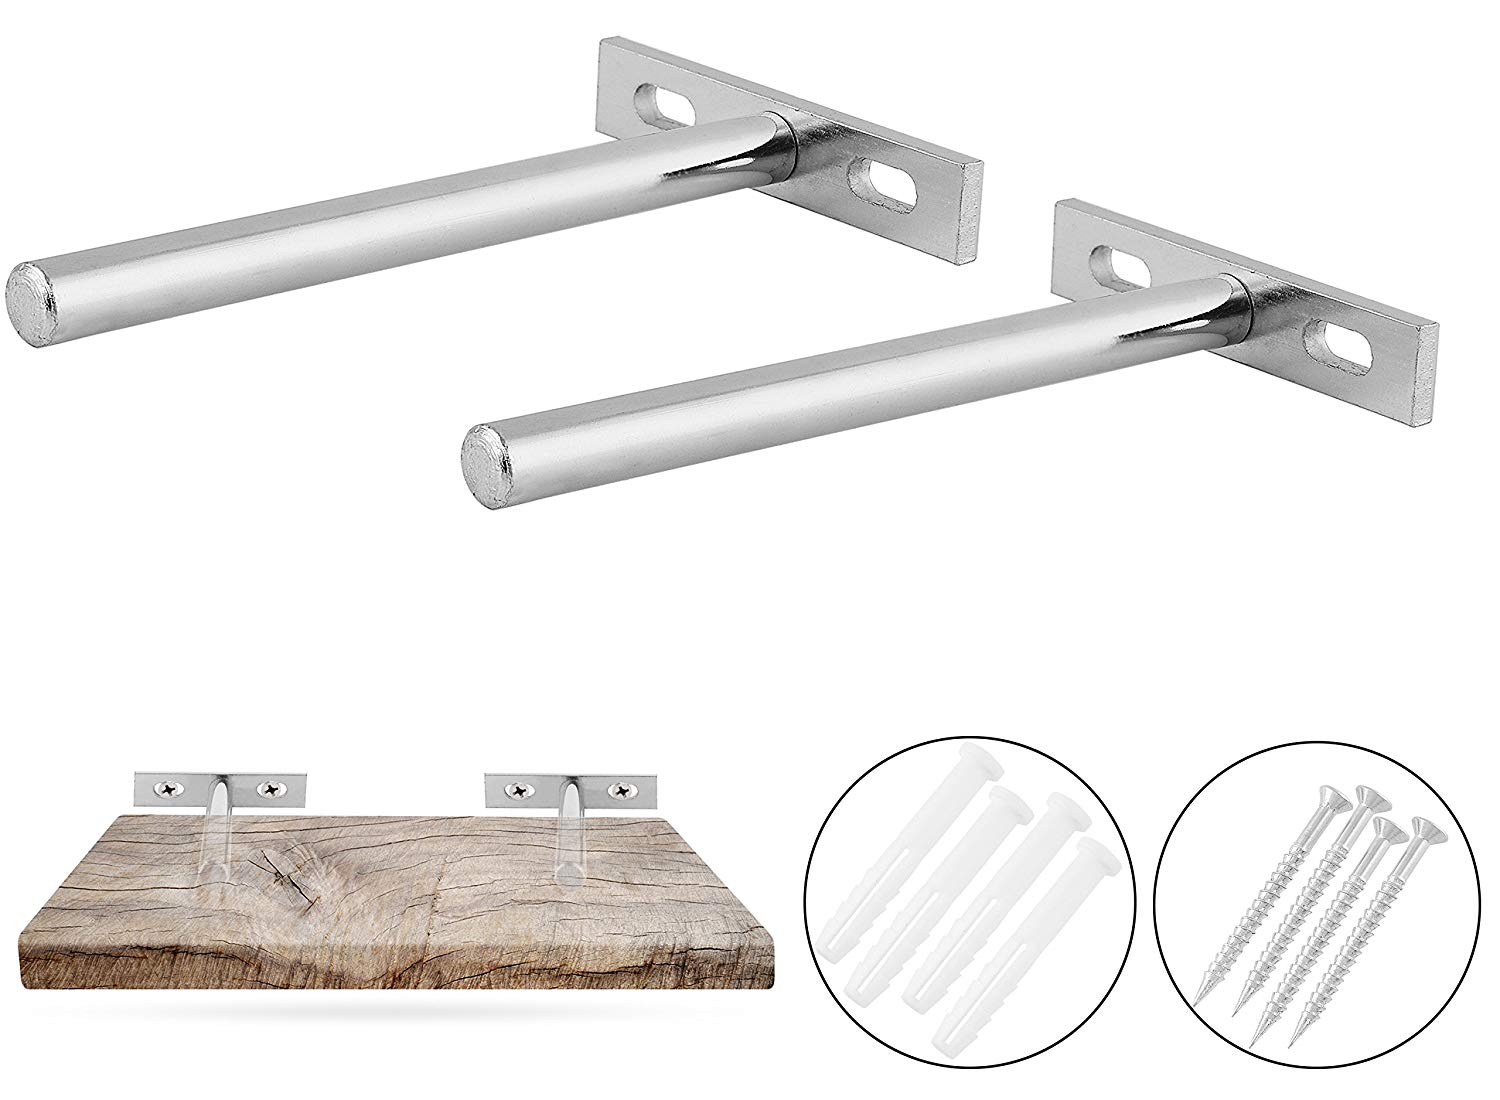 floating shelf brackets hardware find concealed support steel solid for shelves inch invisible small designs tiered corner self adhesive vinyl laminate storage wheels ikea ribba